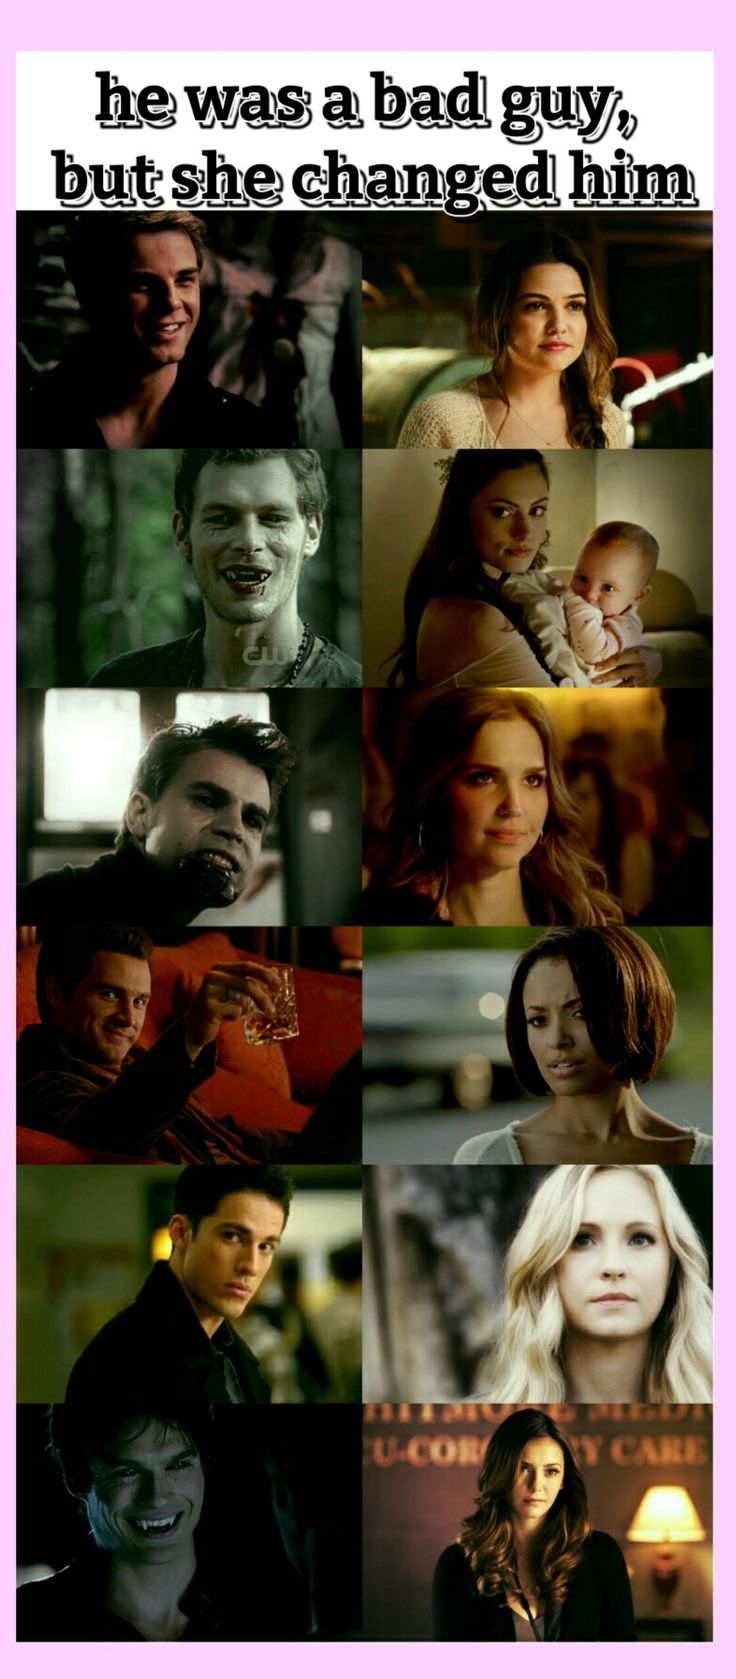 The vampire diaries and the originals couples relatable bad guy and good girl